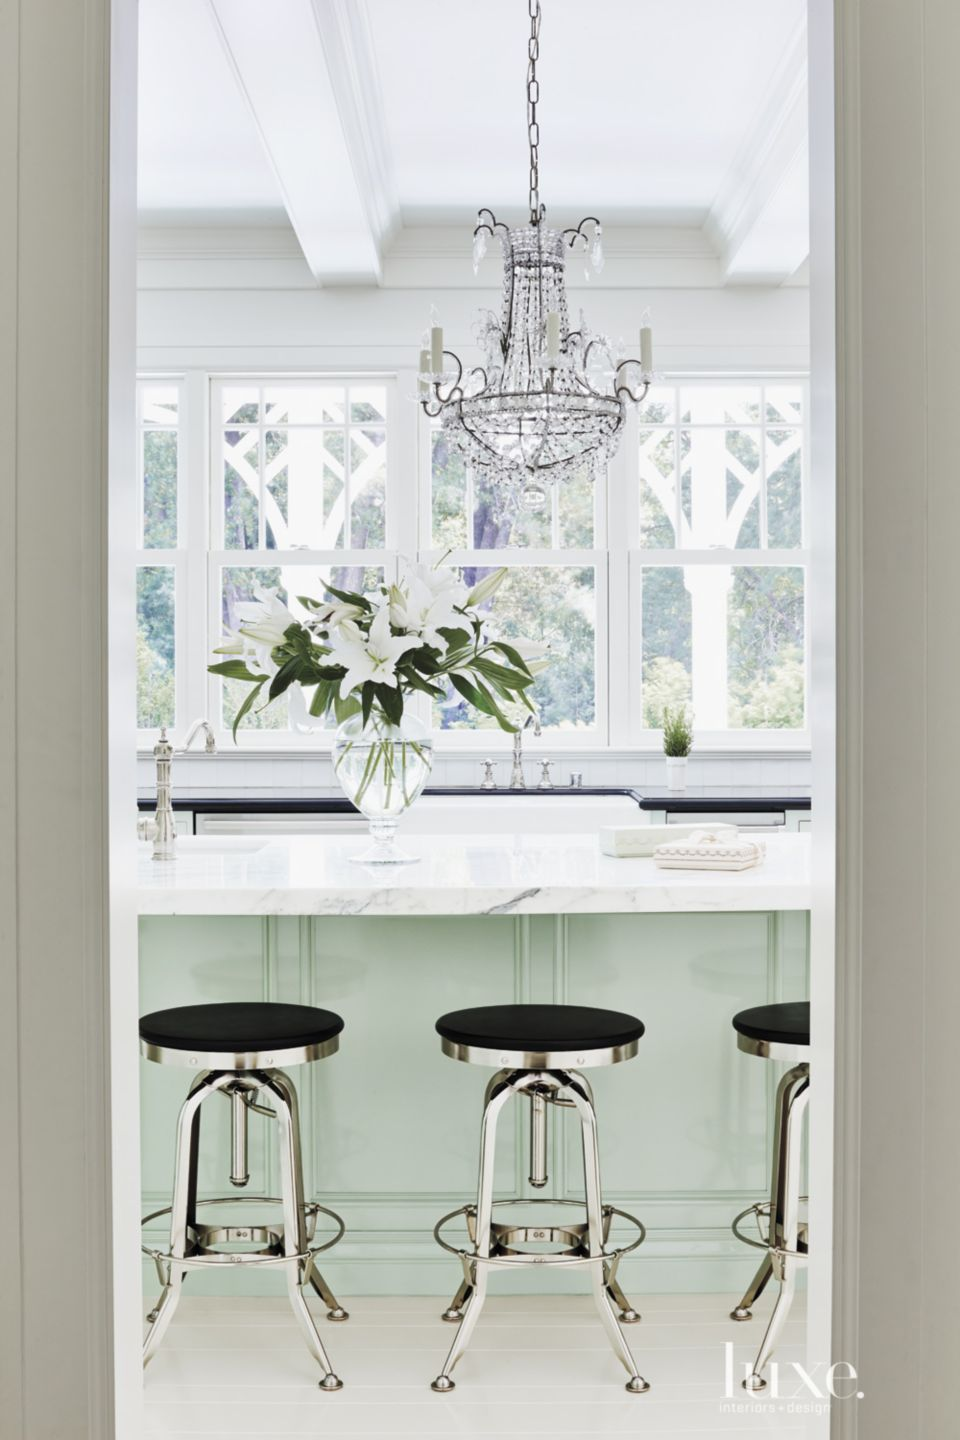 Contemporary Turquoise Kitchen Island